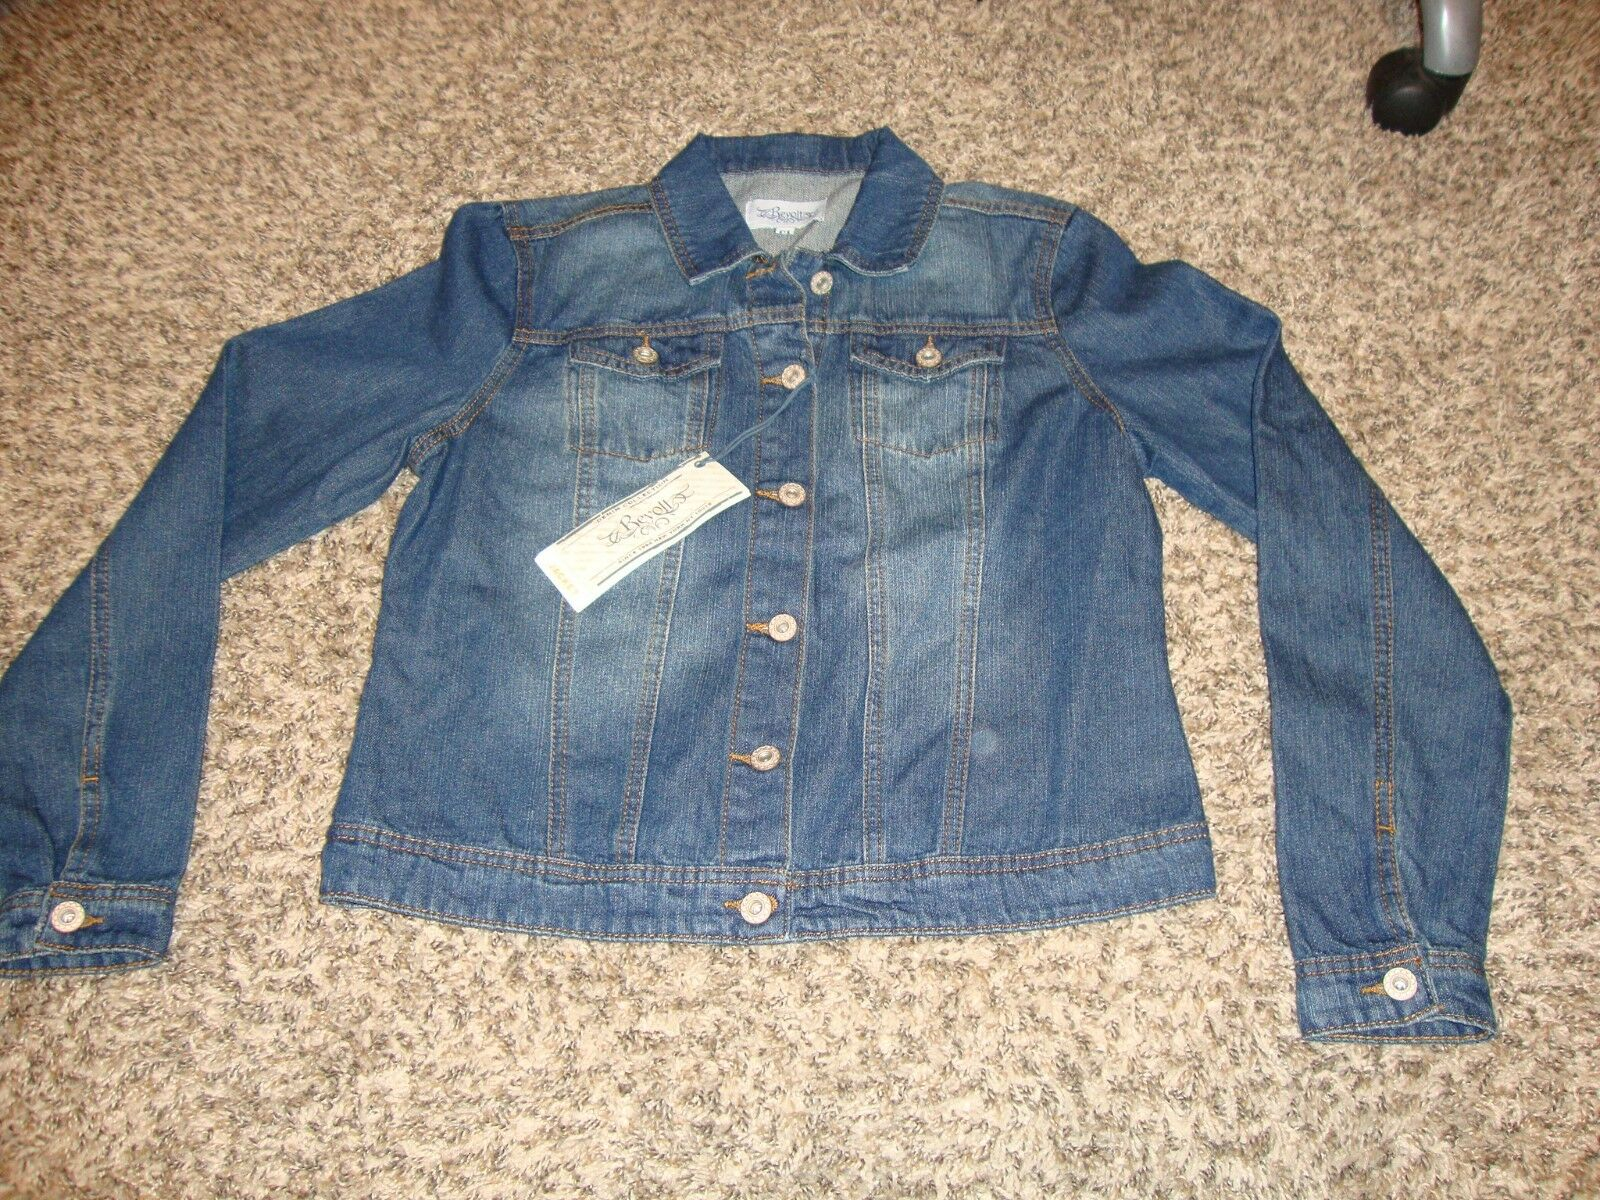 Revolt Denim Blue Jean Jacket, NY Run Way Edition, Size: Med